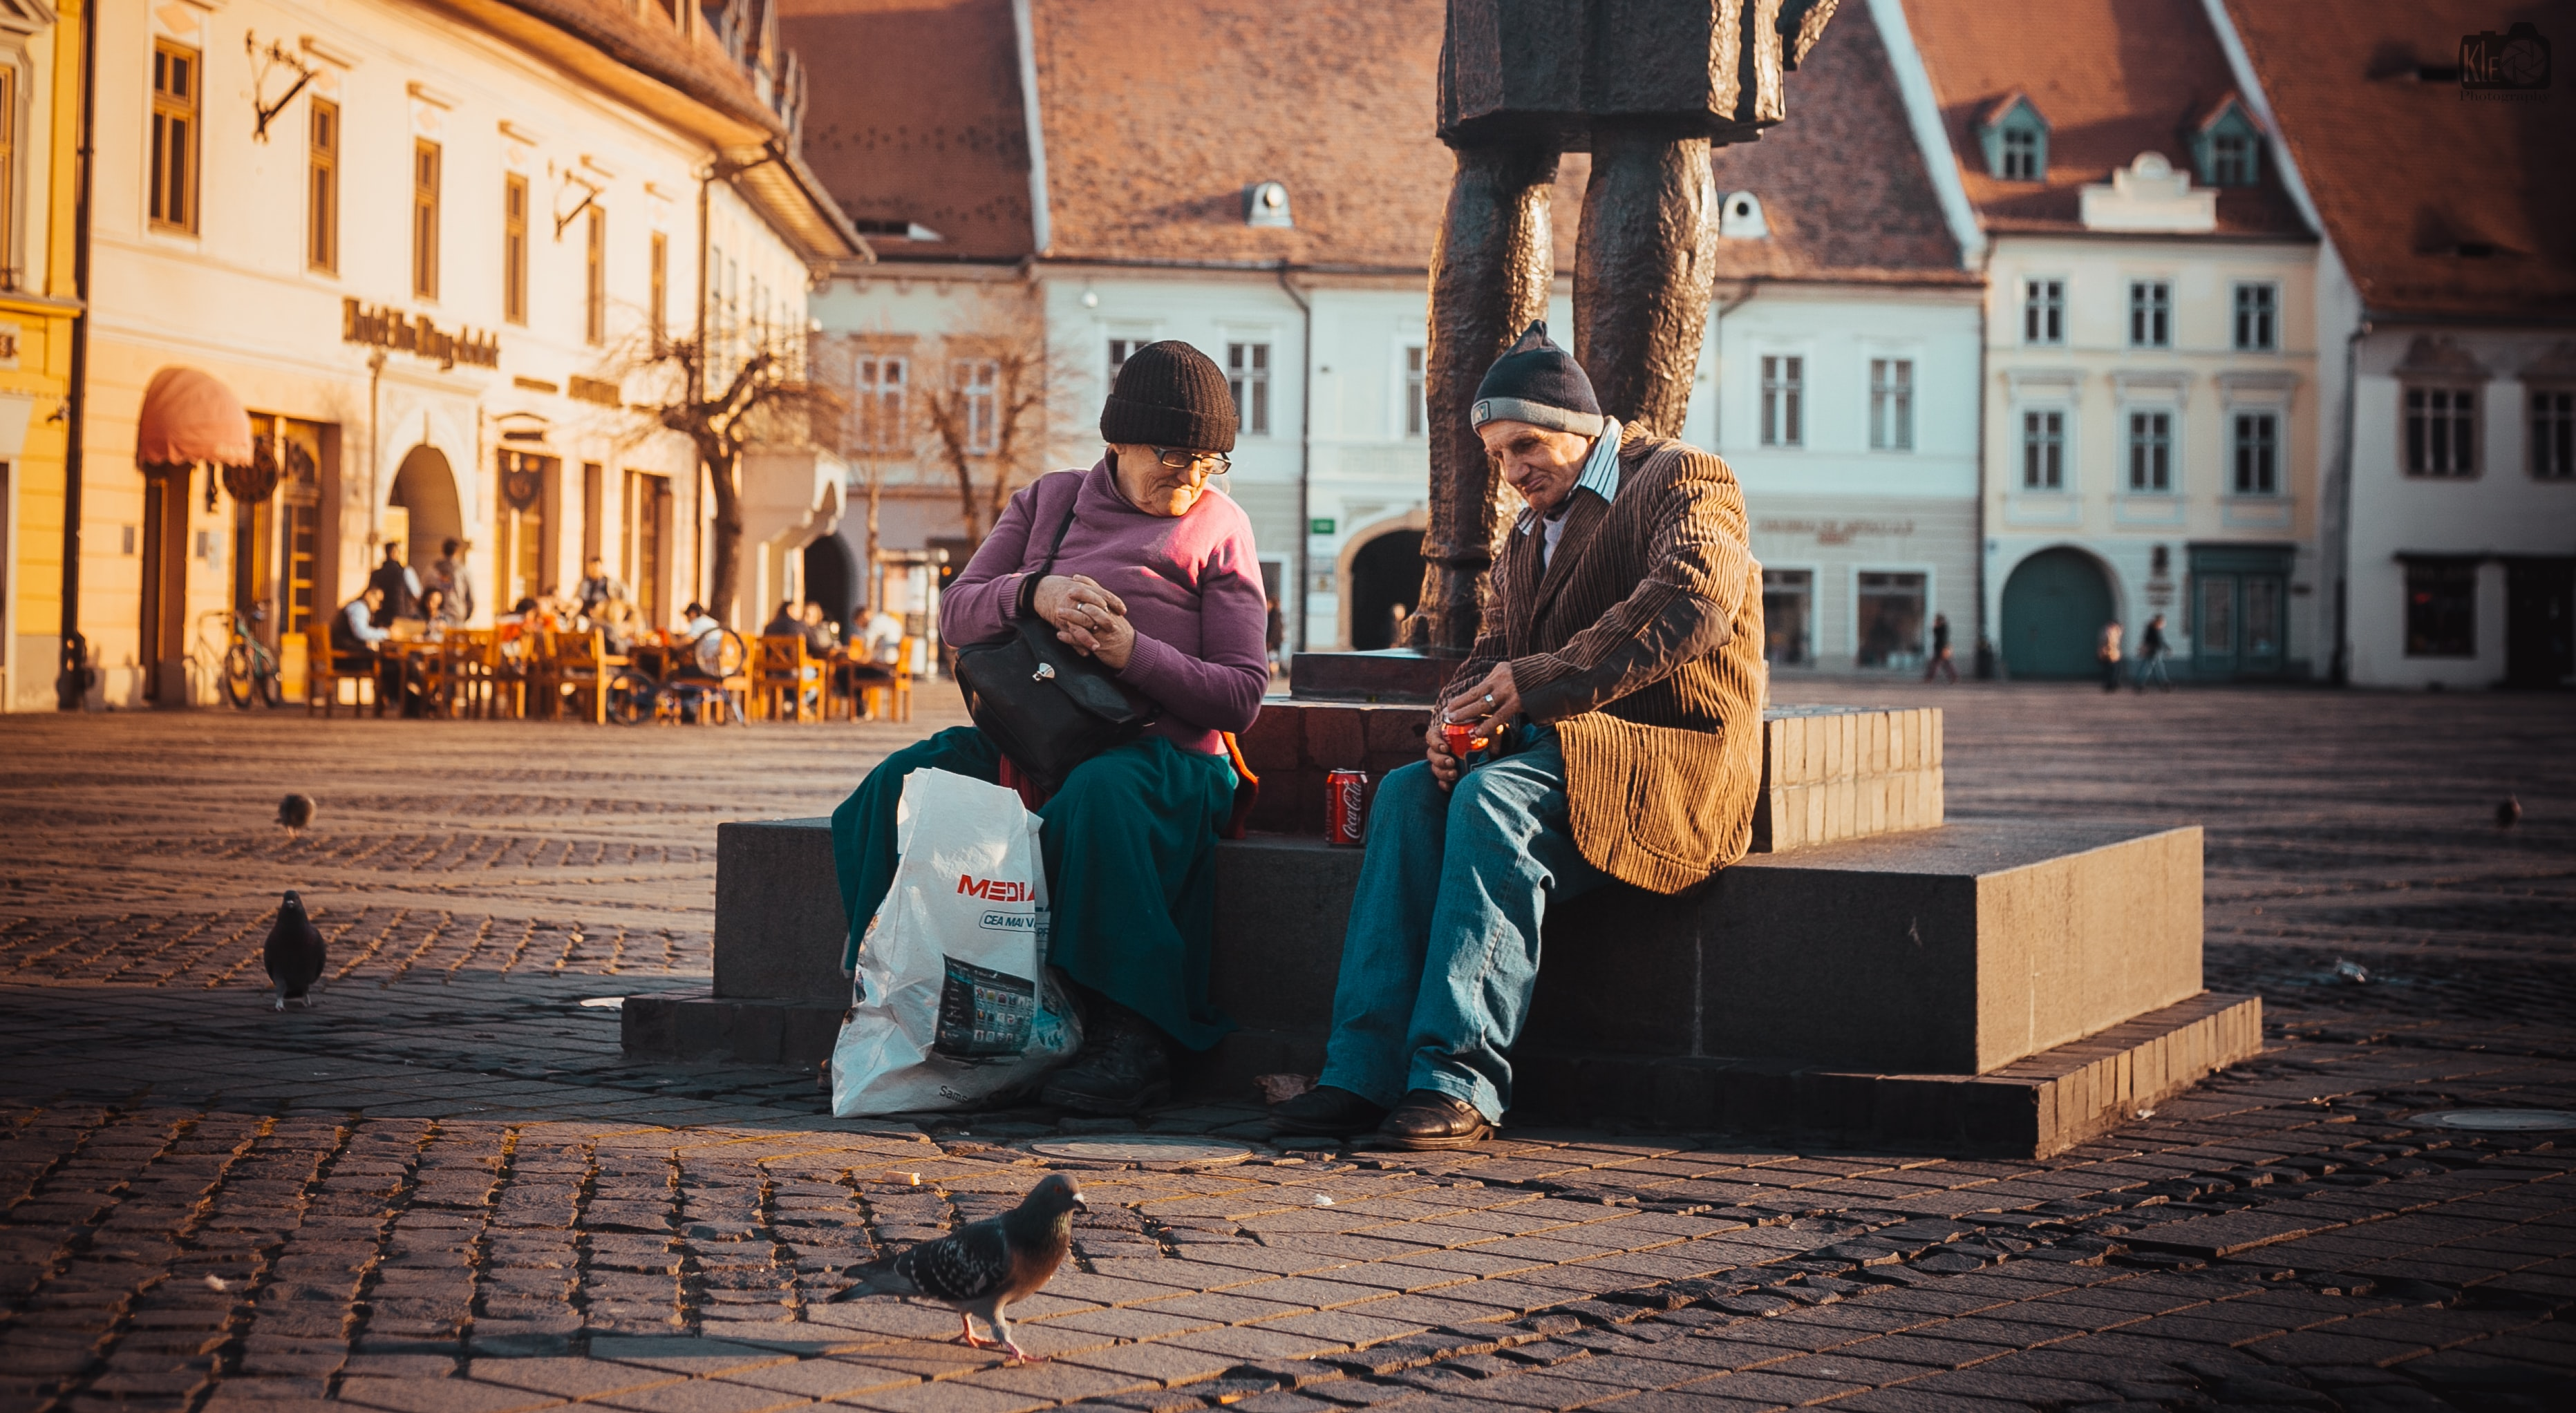 Two smiling people sitting with drinks and shopping bags aside a statue in a city square